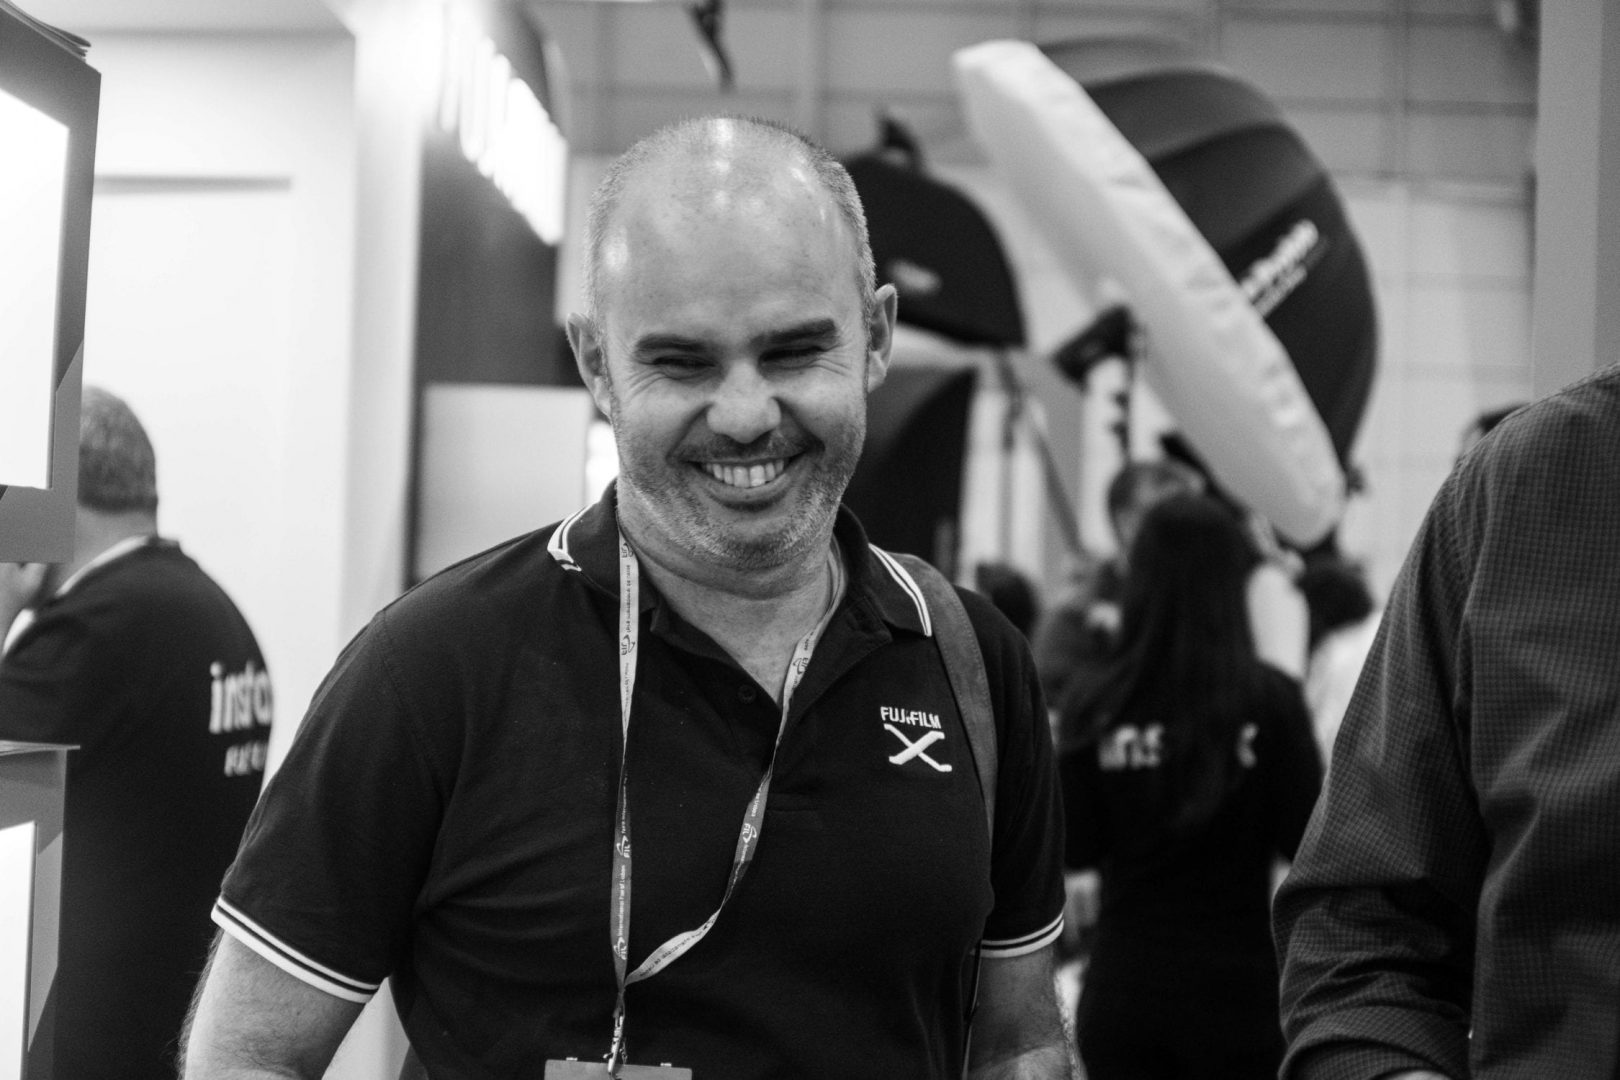 Nelson Pestana from Fujifilm Portugal